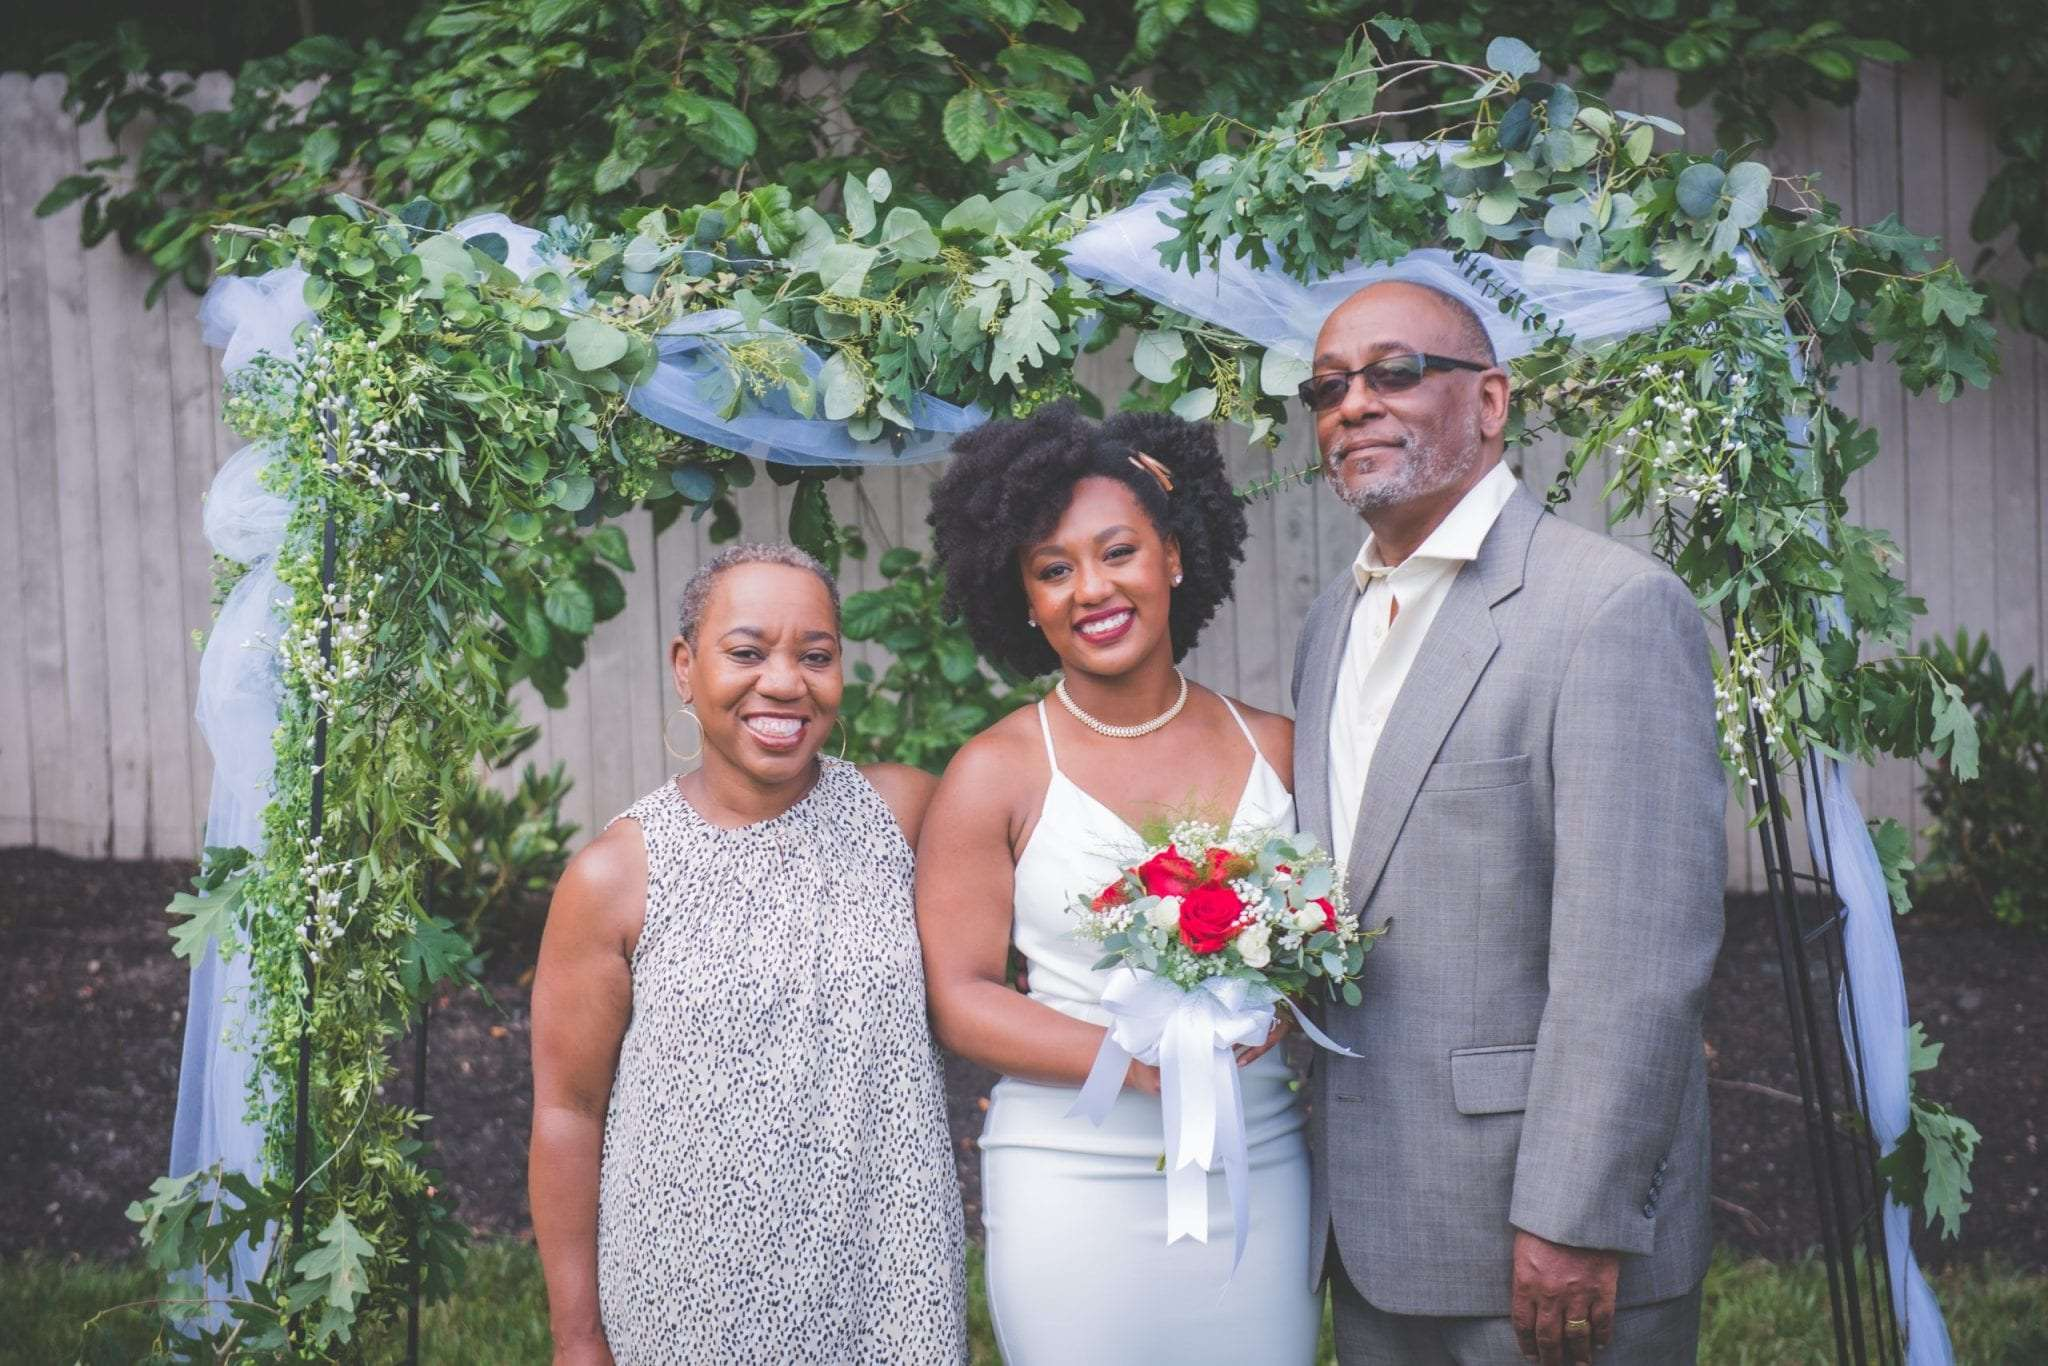 NJ backyard Micro wedding family portraits